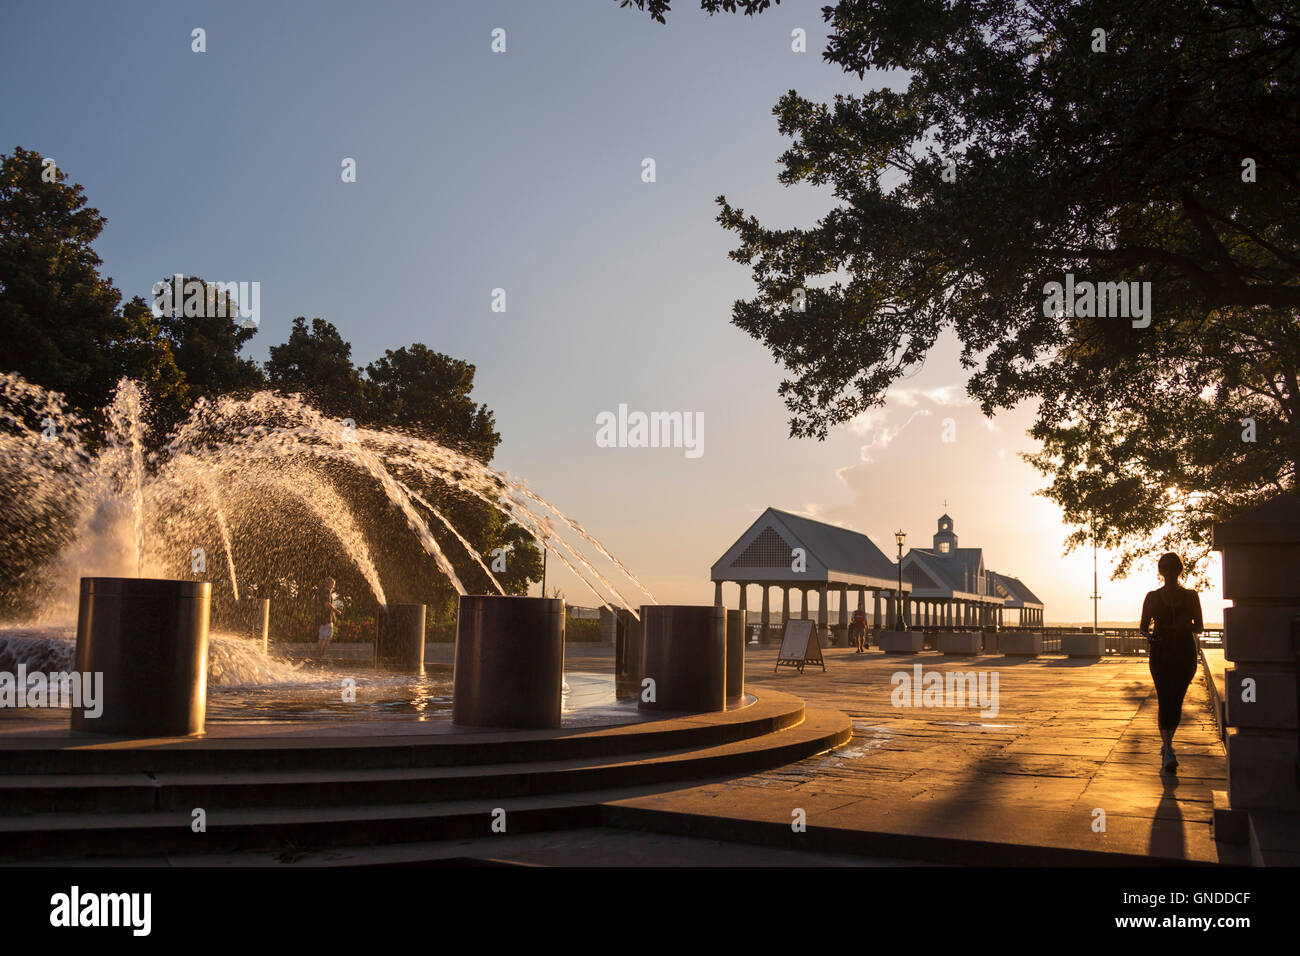 VENDUE FOUNTAIN (©STUART O DAWSON / SASAKI ASSOCS 1990) WATERFRONT PARK DOWNTOWN CHARLESTON SOUTH CAROLINA - Stock Image